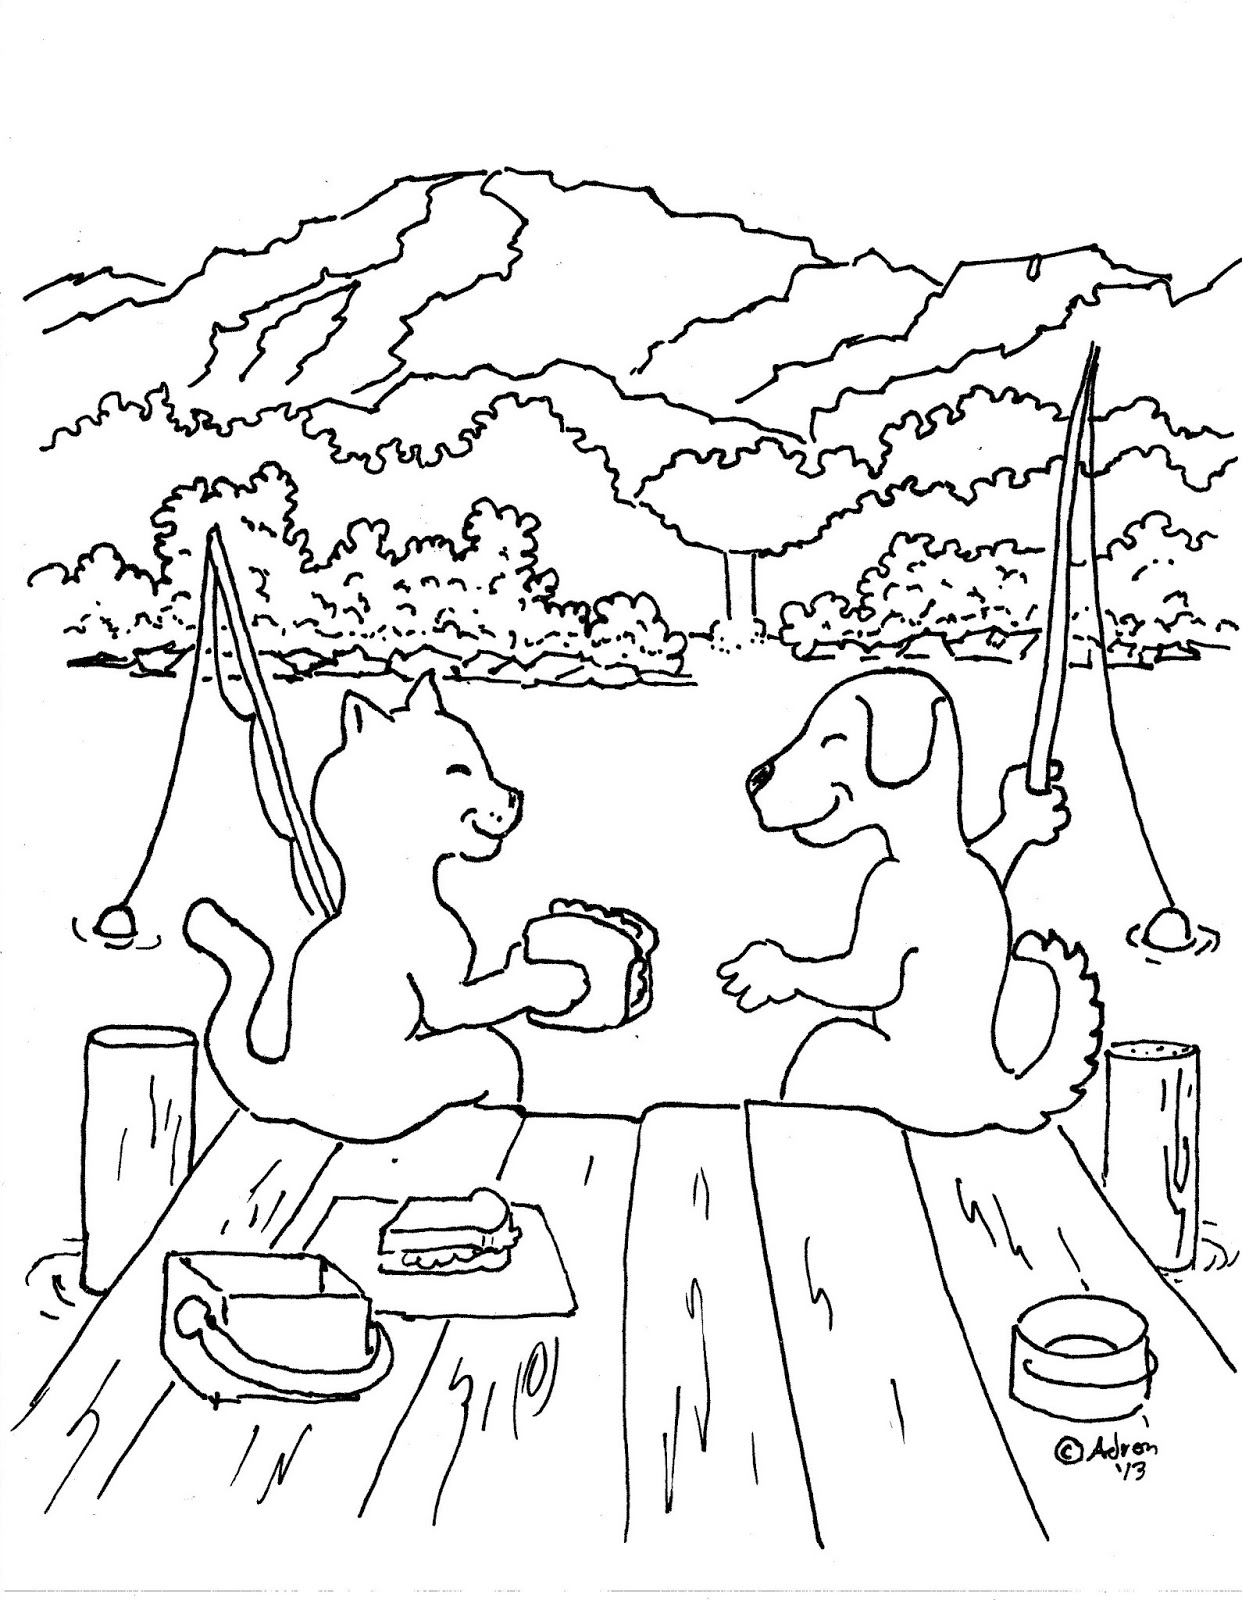 Coloring Pages For Kids By Mr Adron May